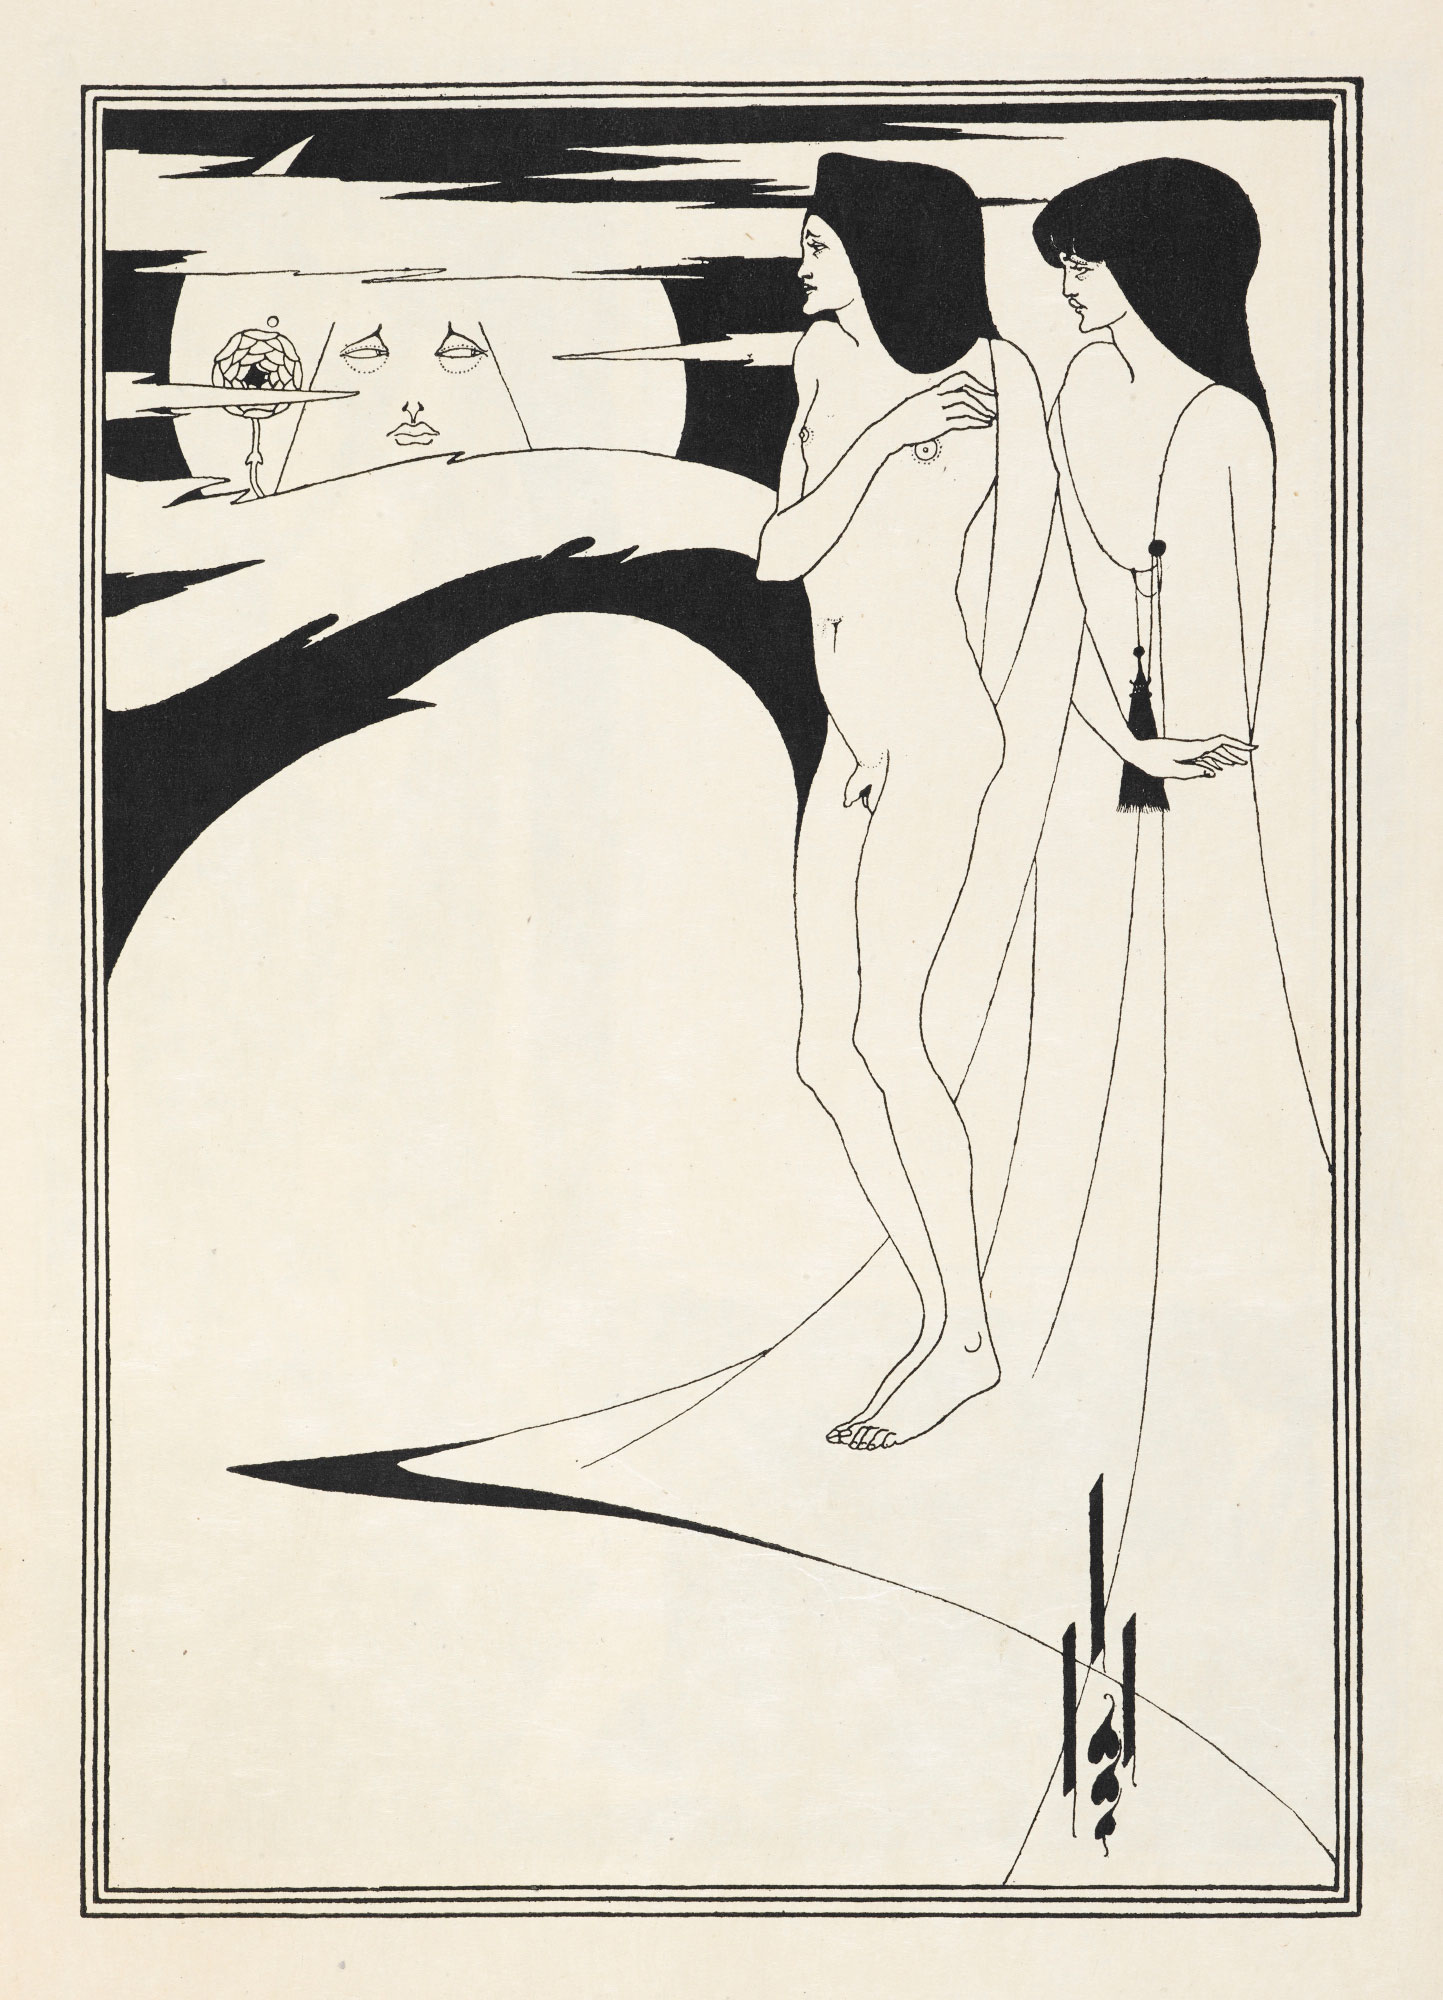 Aubrey Beardsley illustrations for Salomé by Oscar Wilde